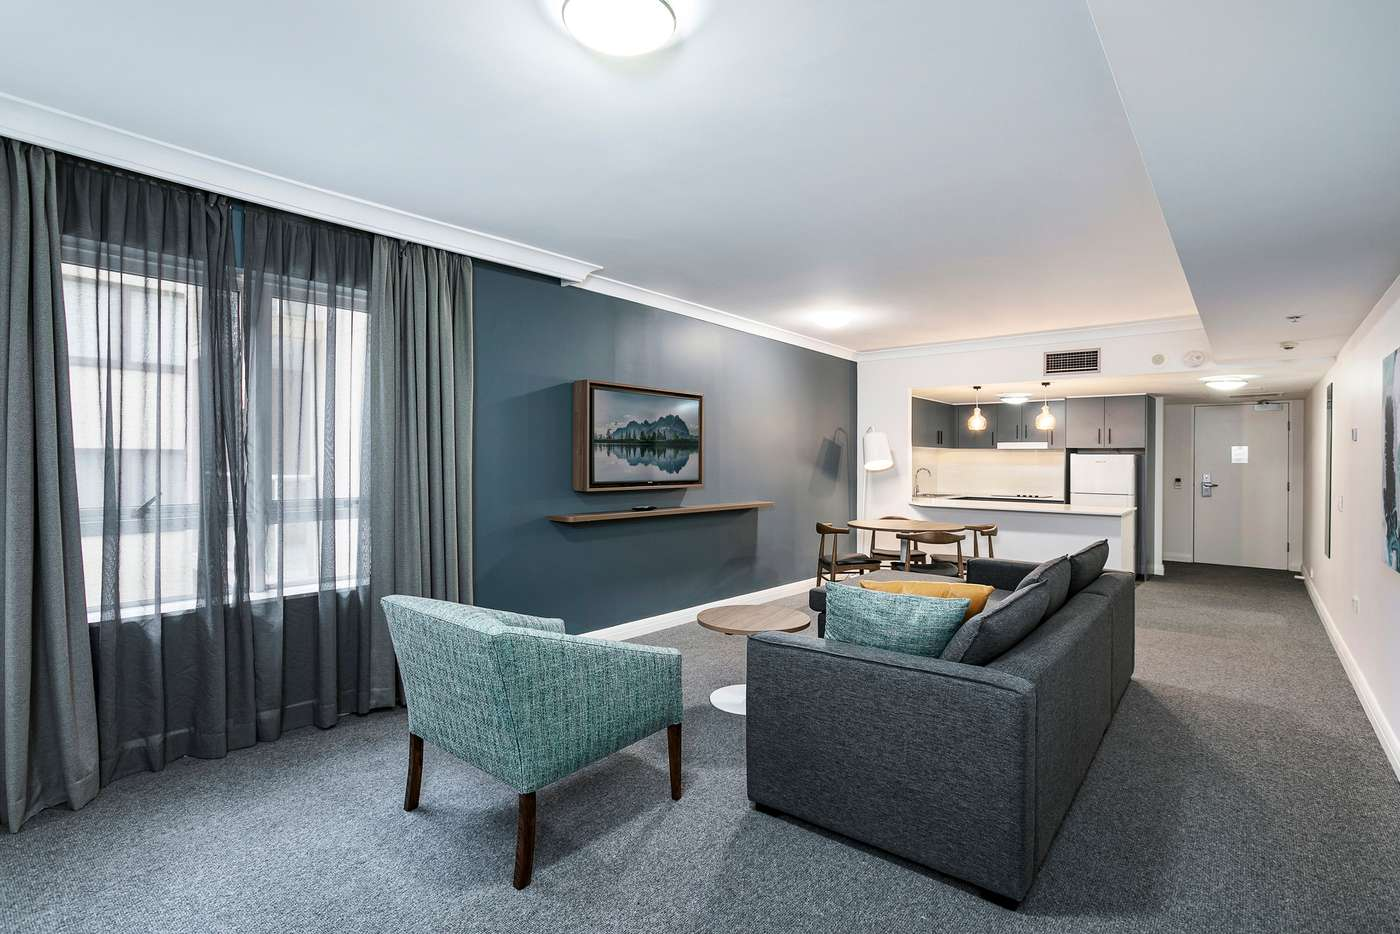 Main view of Homely apartment listing, 501/8 Brown Street, Chatswood NSW 2067